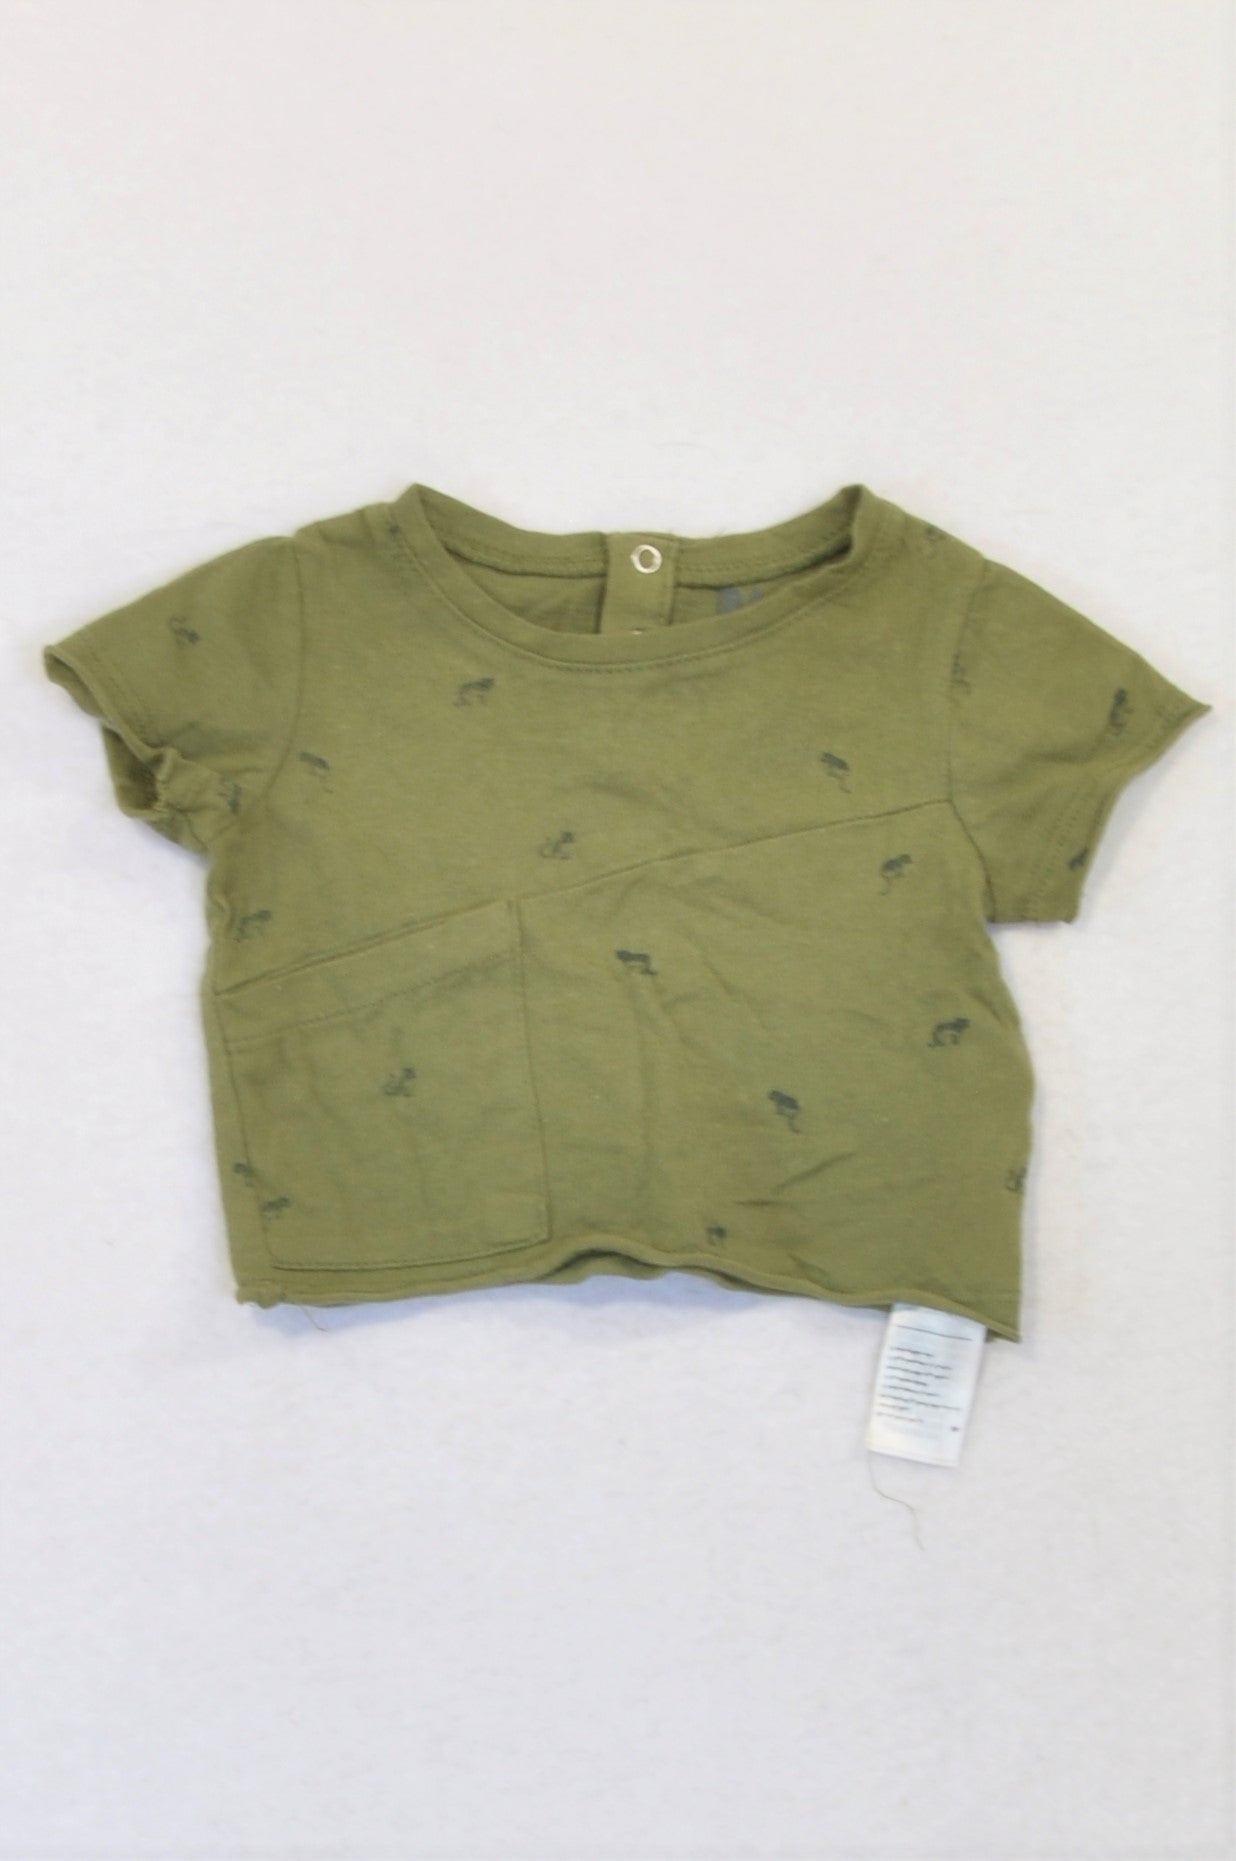 Cotton On Olive Cut Trim Cheetah T-shirt Unisex 0-3 months